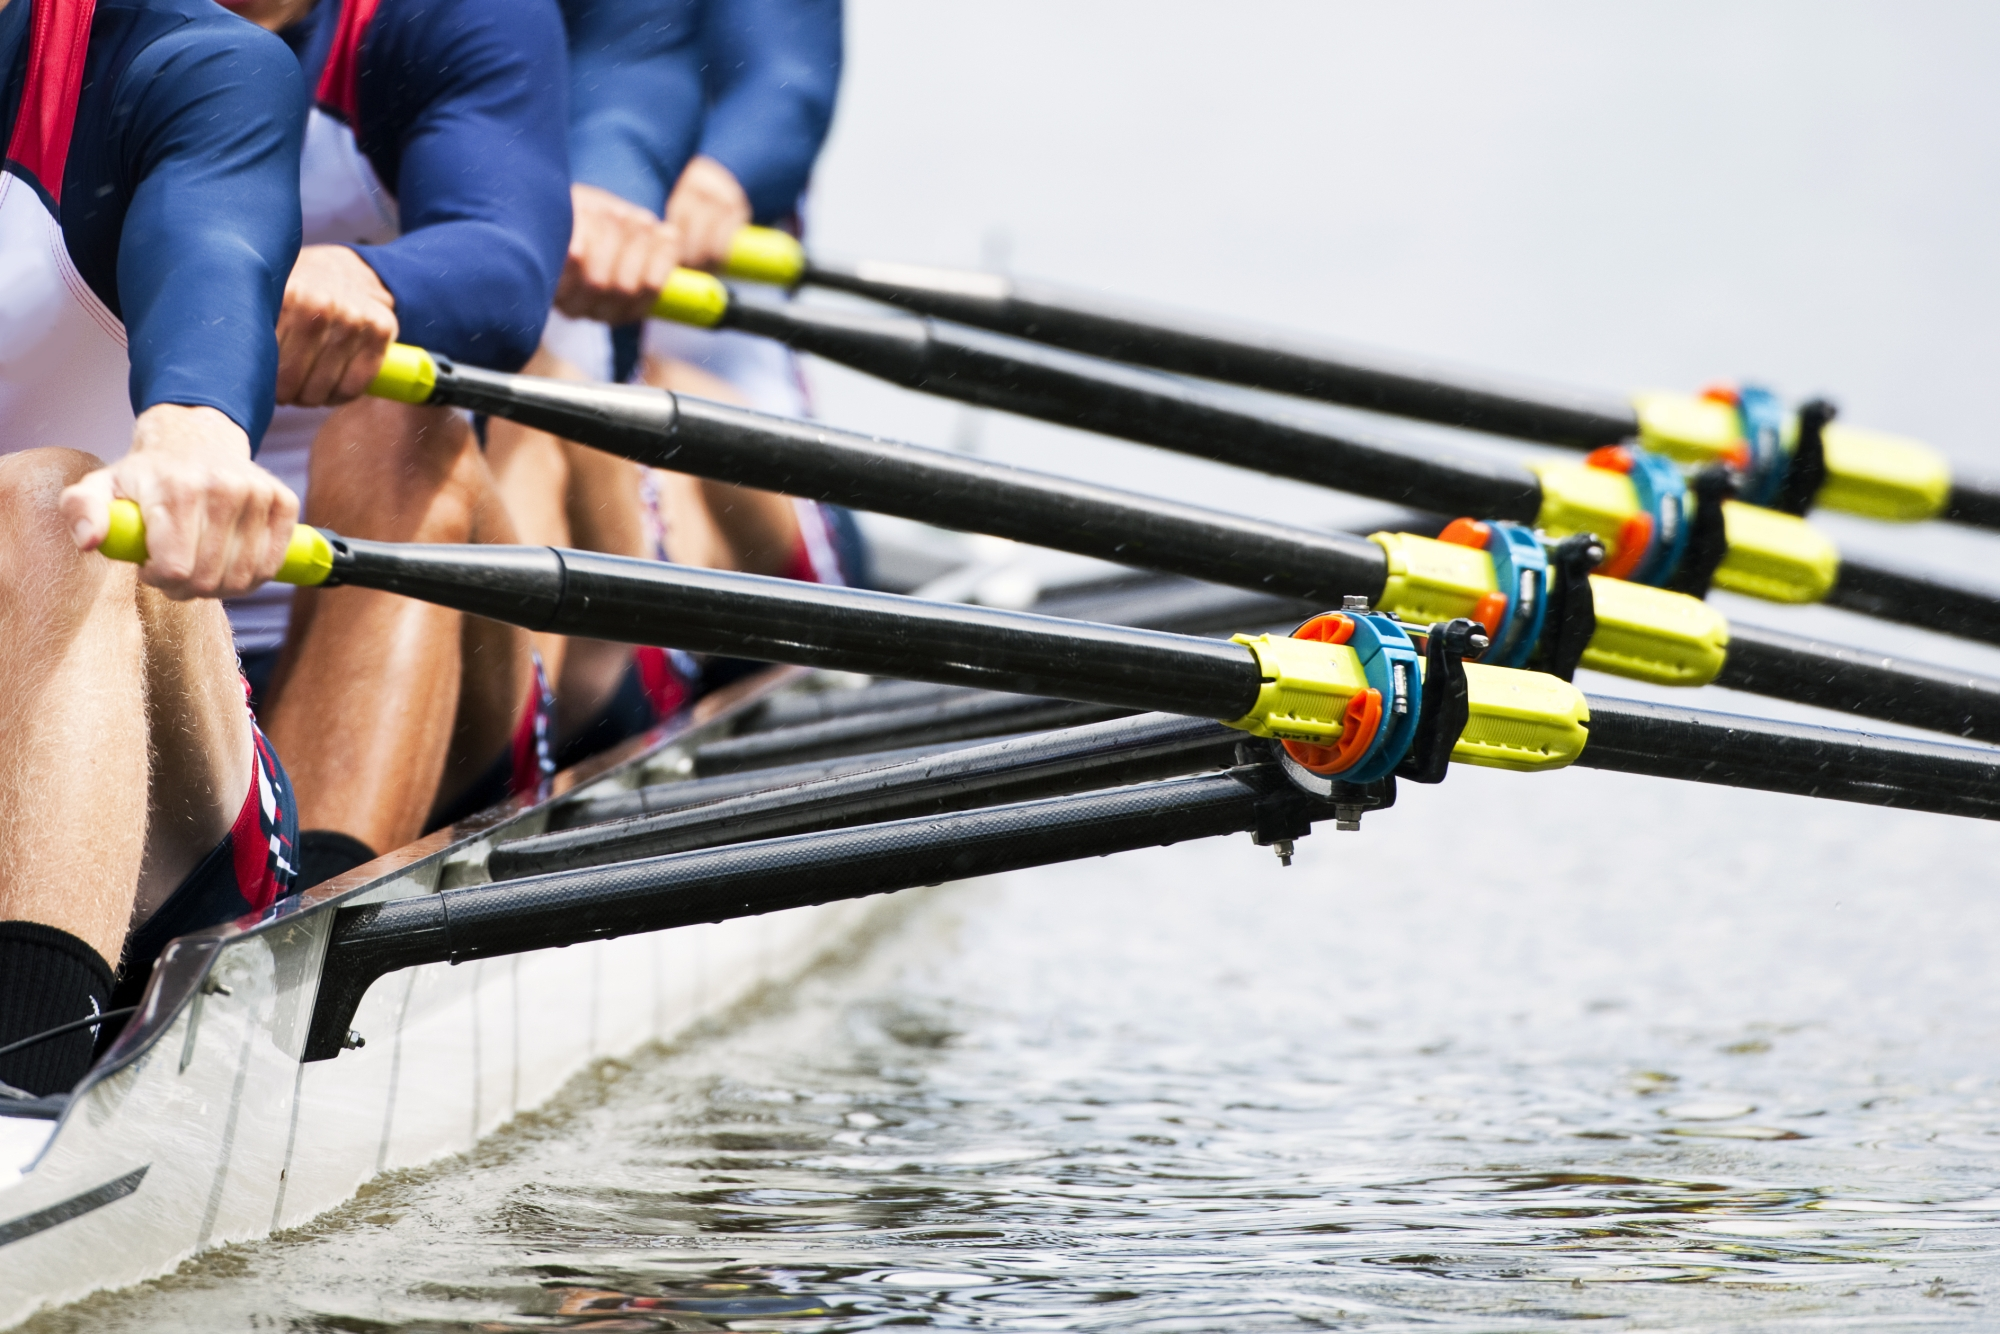 The decision around a Fremantle Rowing Club grant has been deferred. Picture: file image